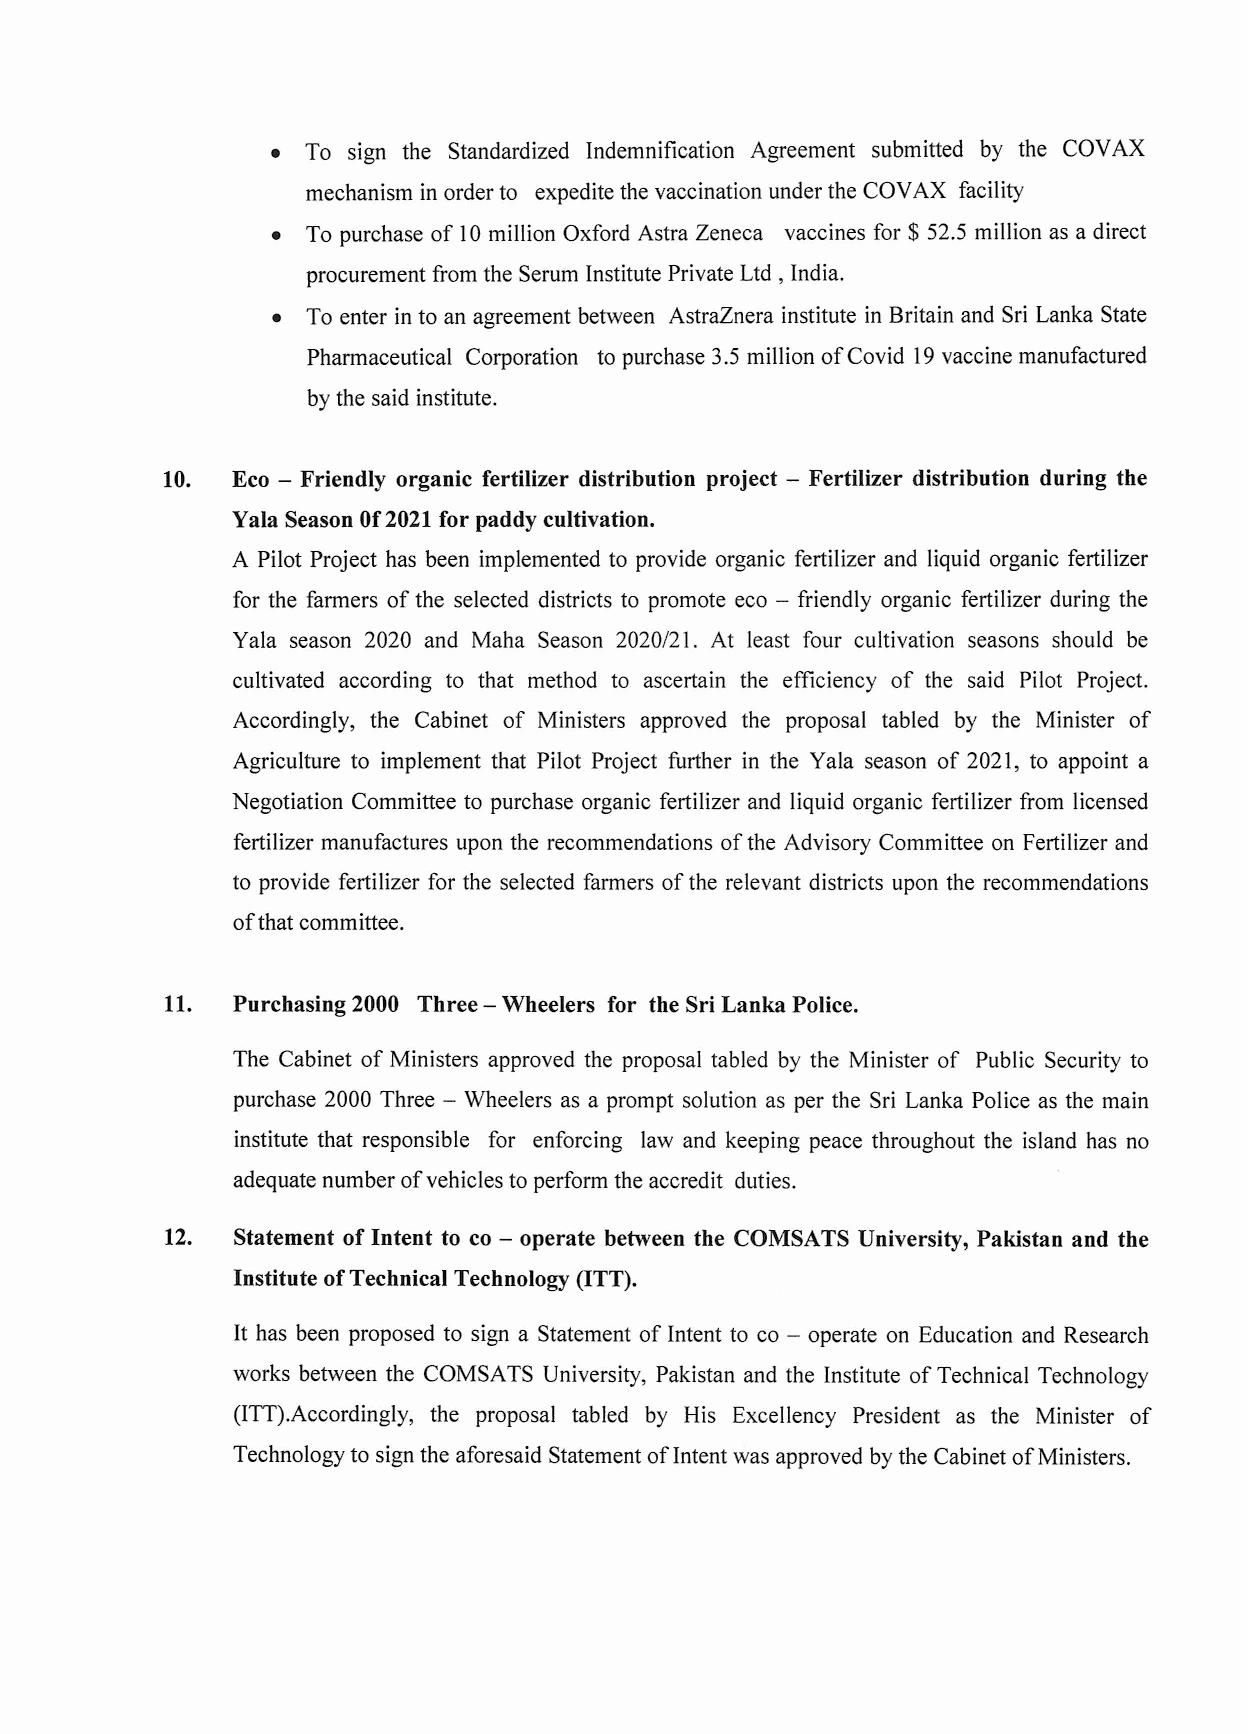 Cabinet Decision on 22.02.2021 Englihs page 004